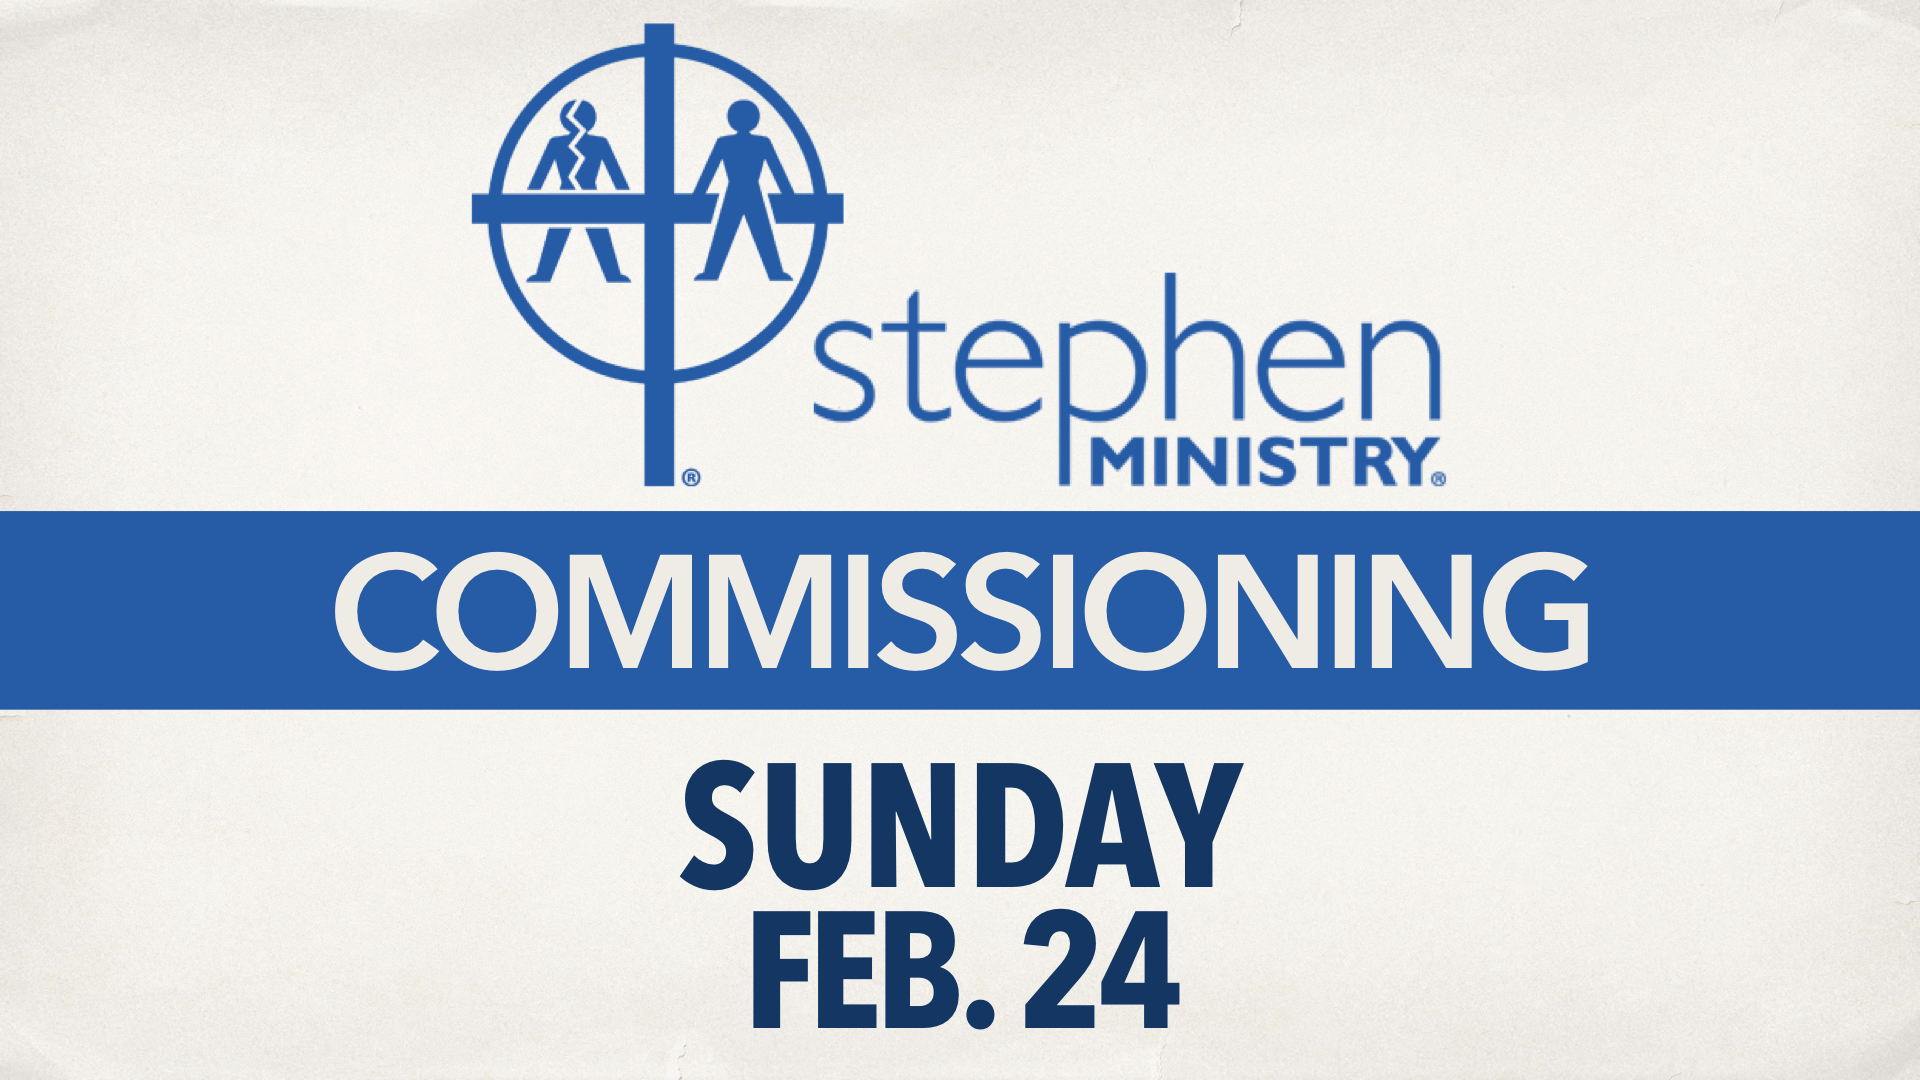 Stephen Ministry Leaders Commissioning Sunday, Feb. 24